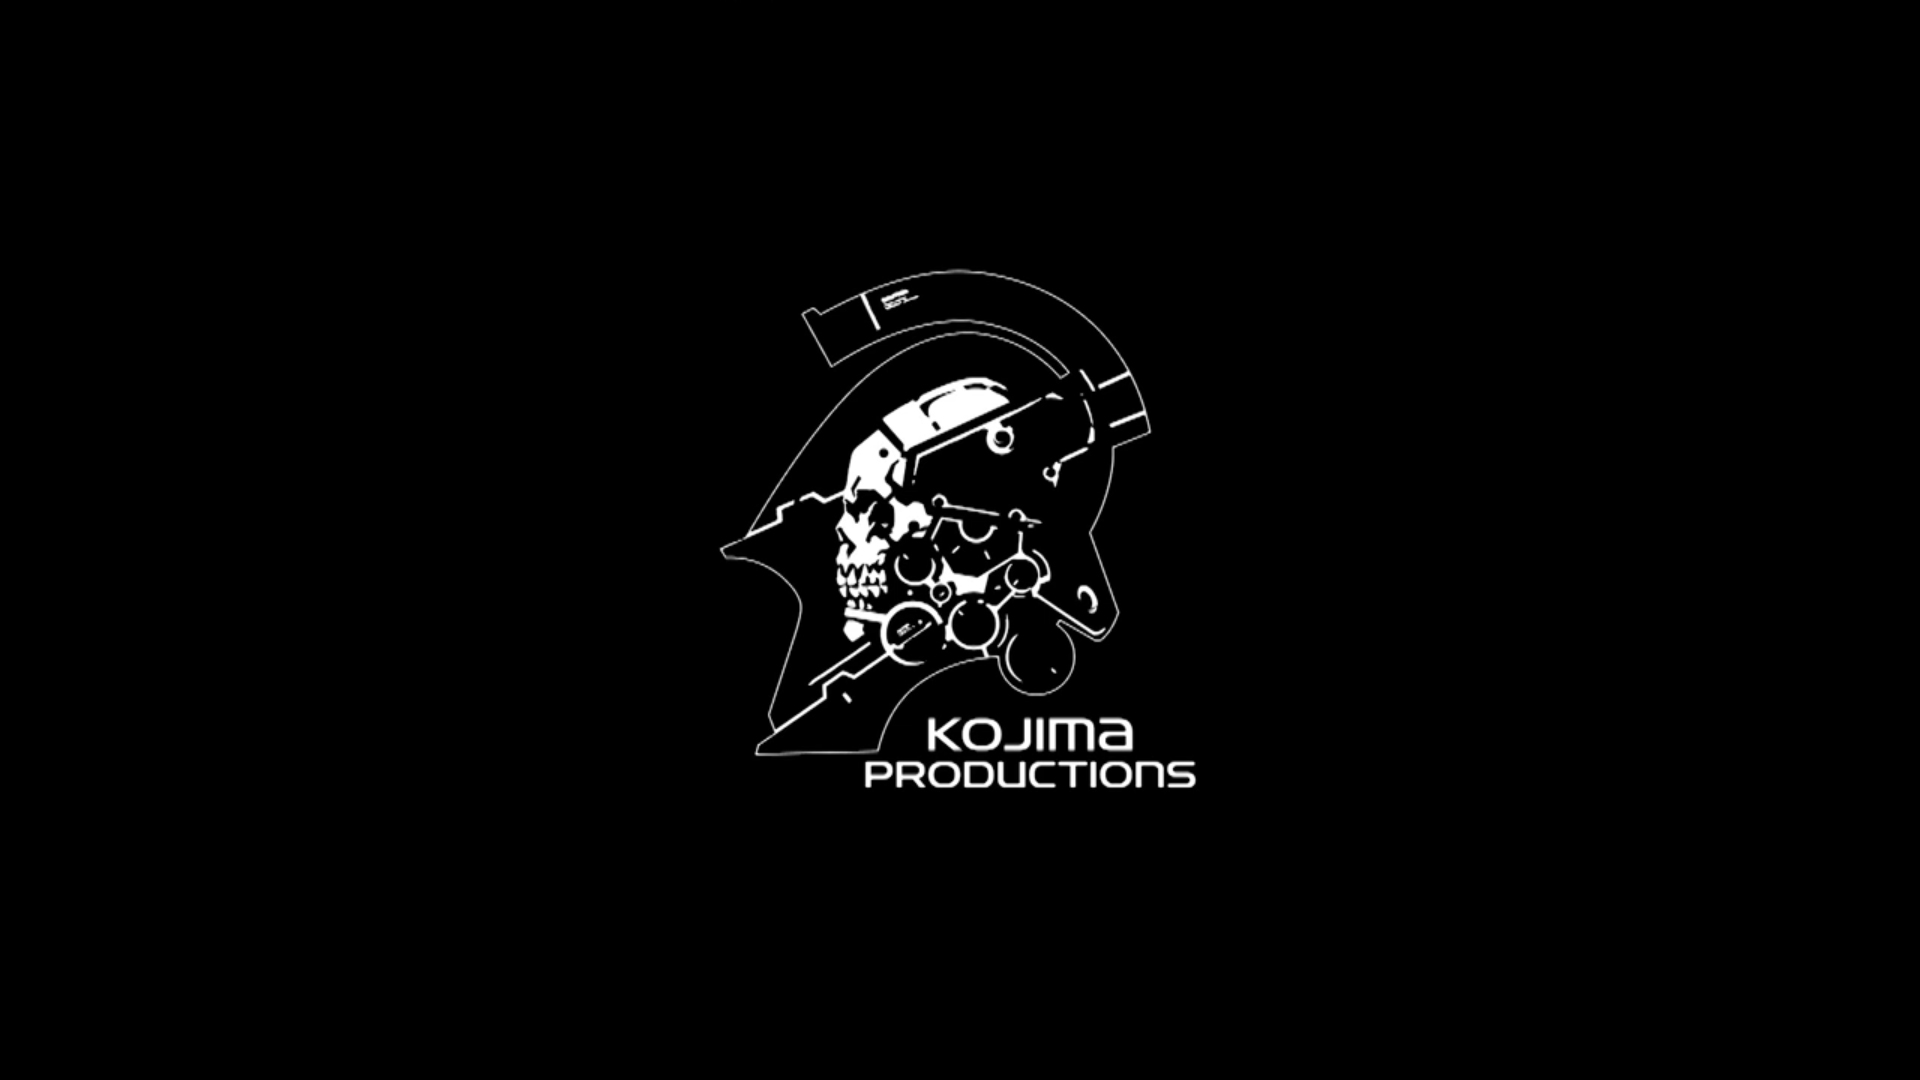 kojima-productions-new-logo